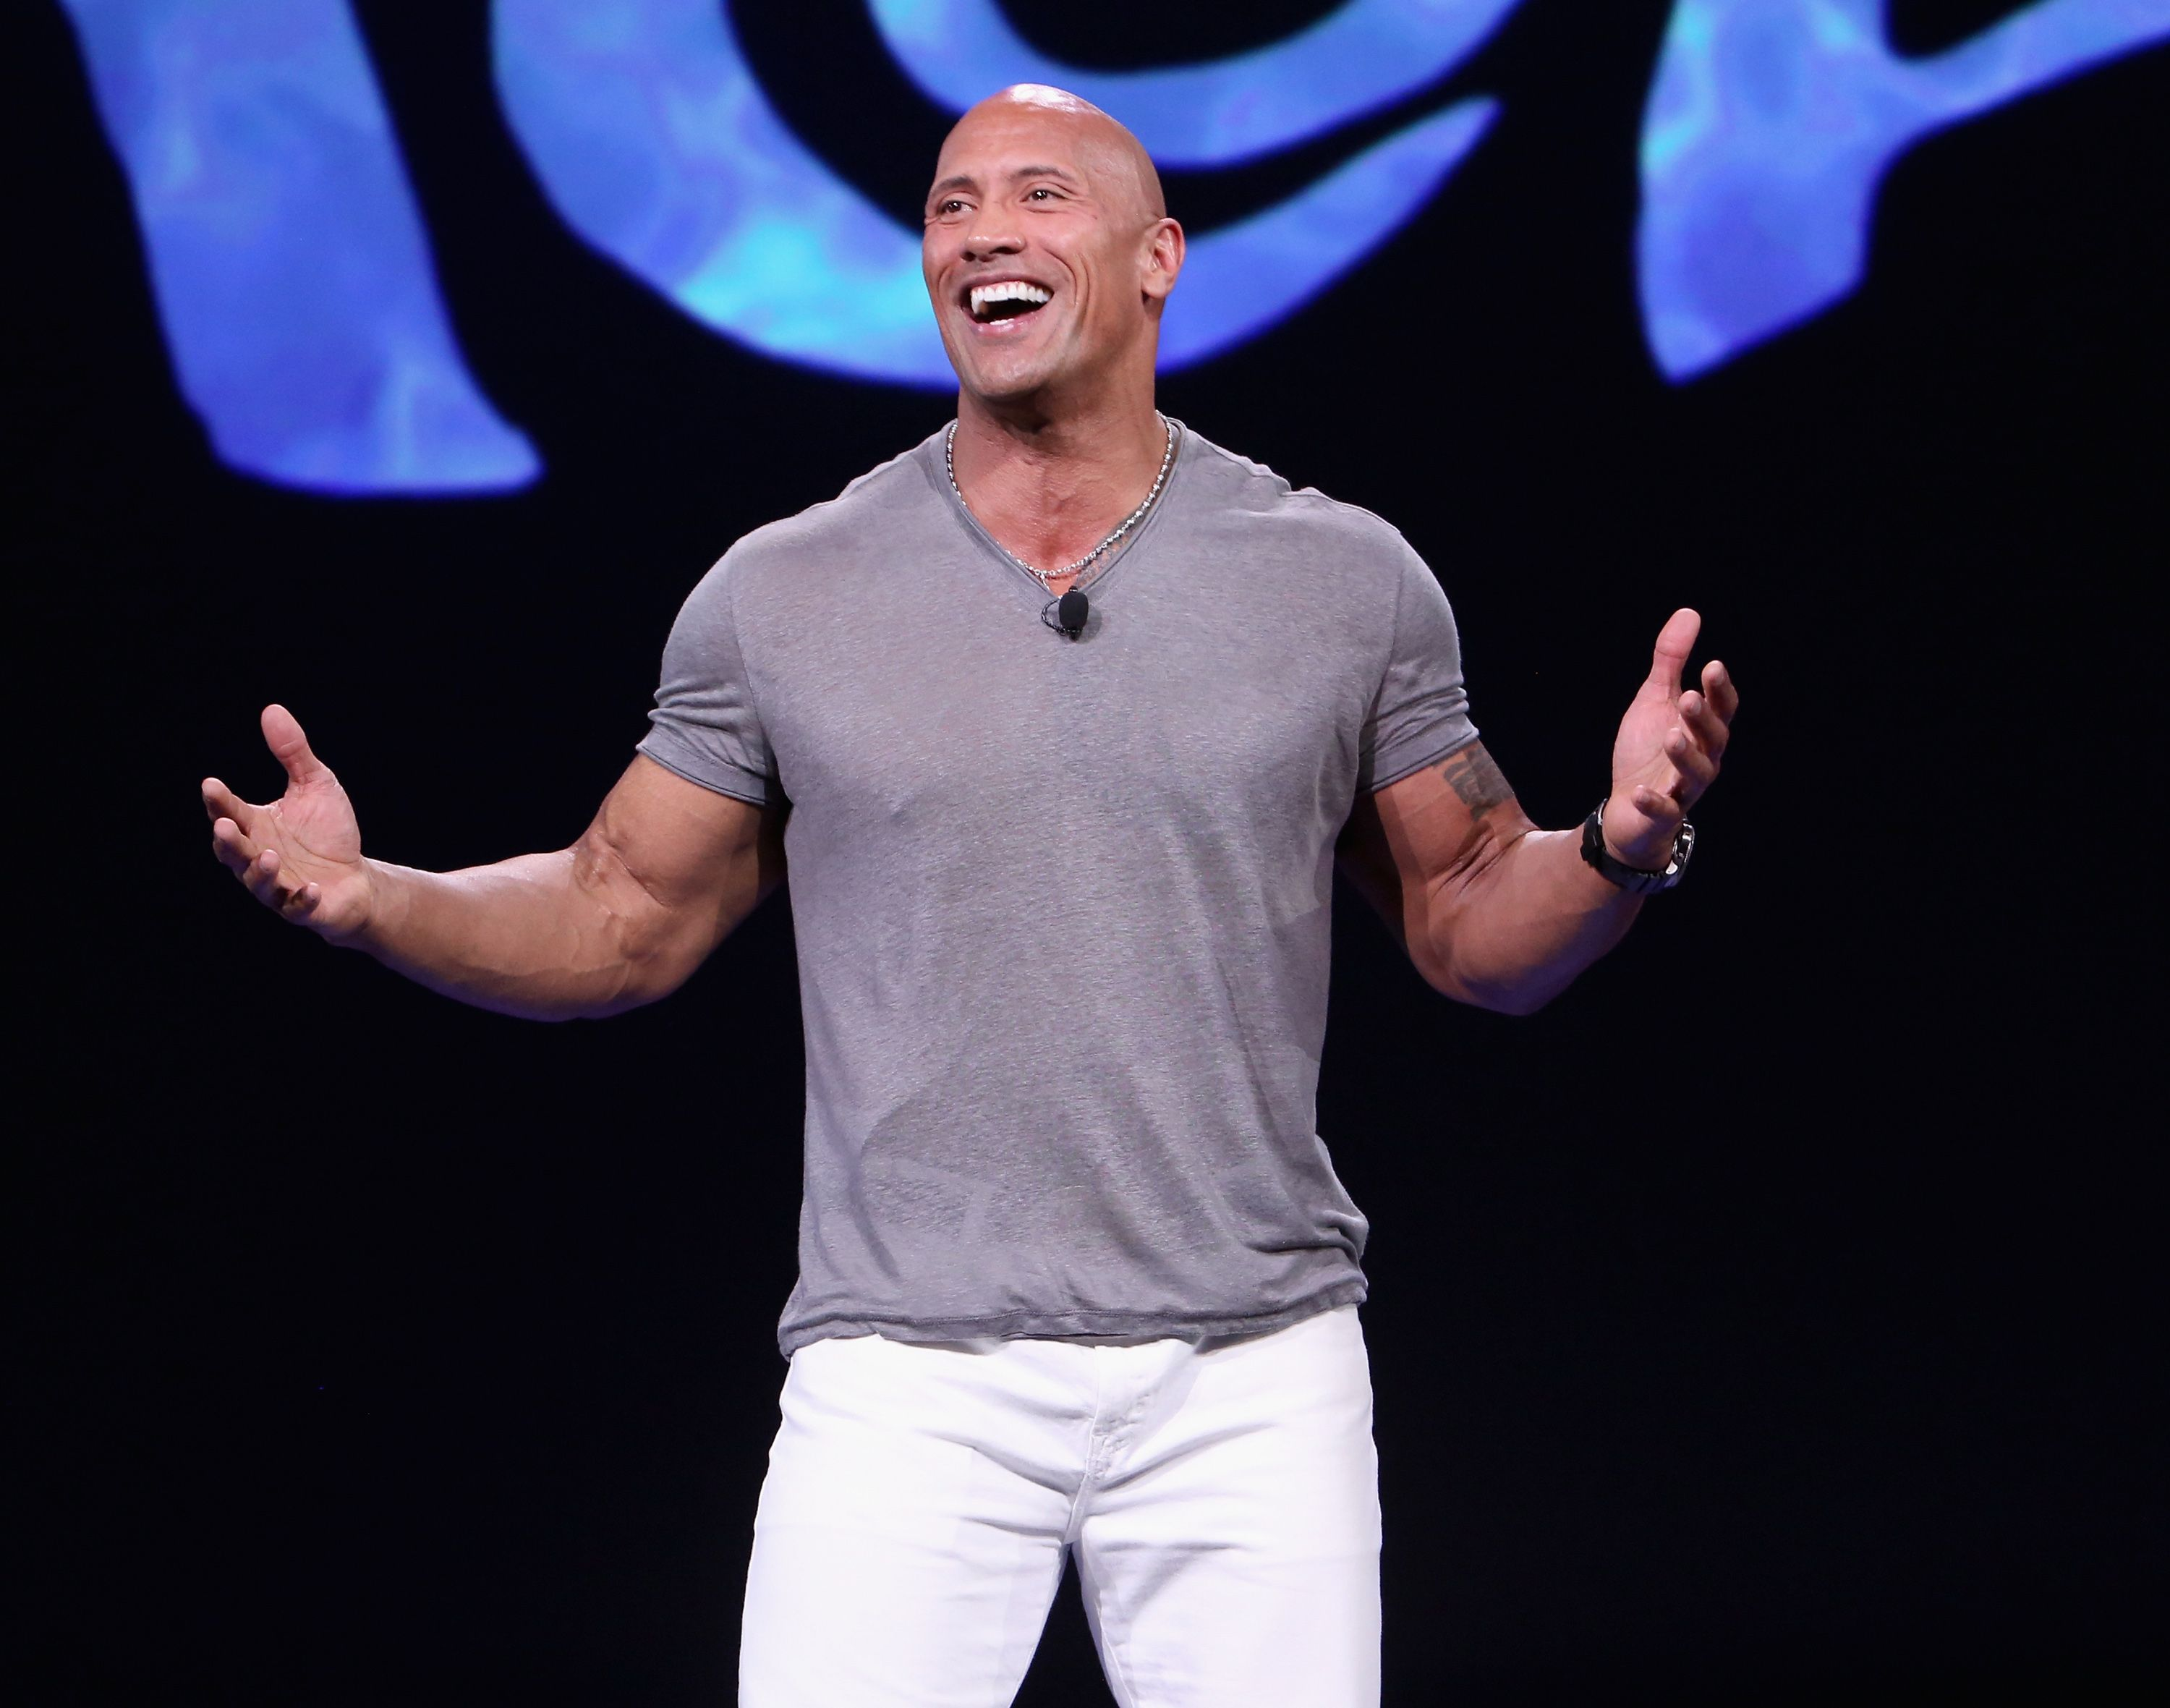 Dwayne The Rock Johnson Told Jimmy Fallon About His Cheat